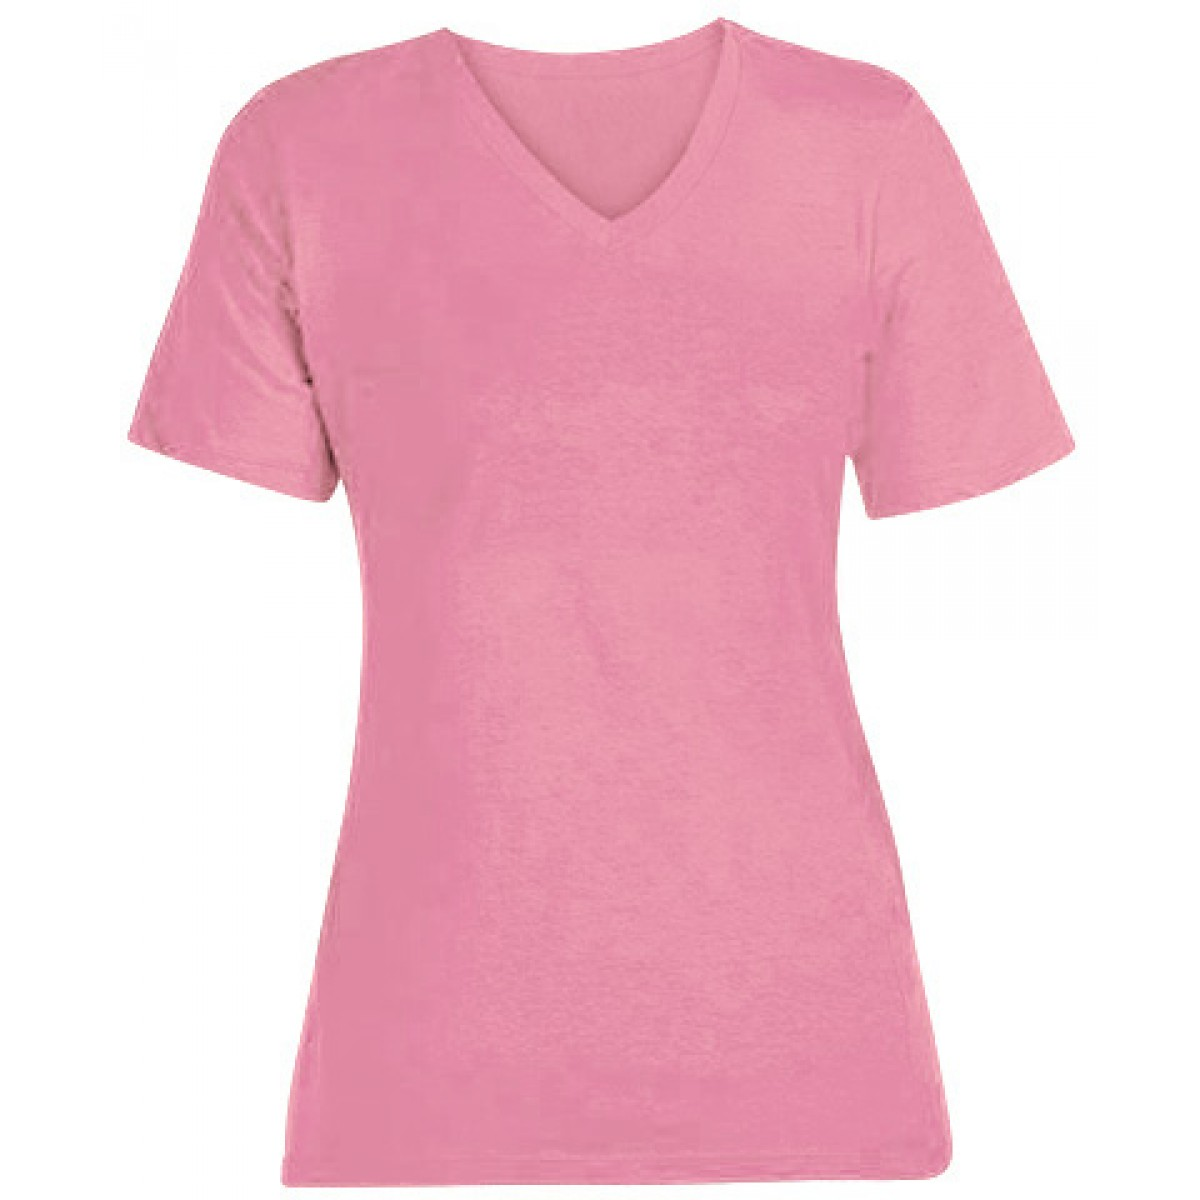 Econscious Ladies Short-Sleeve V-Neck-Pink-S